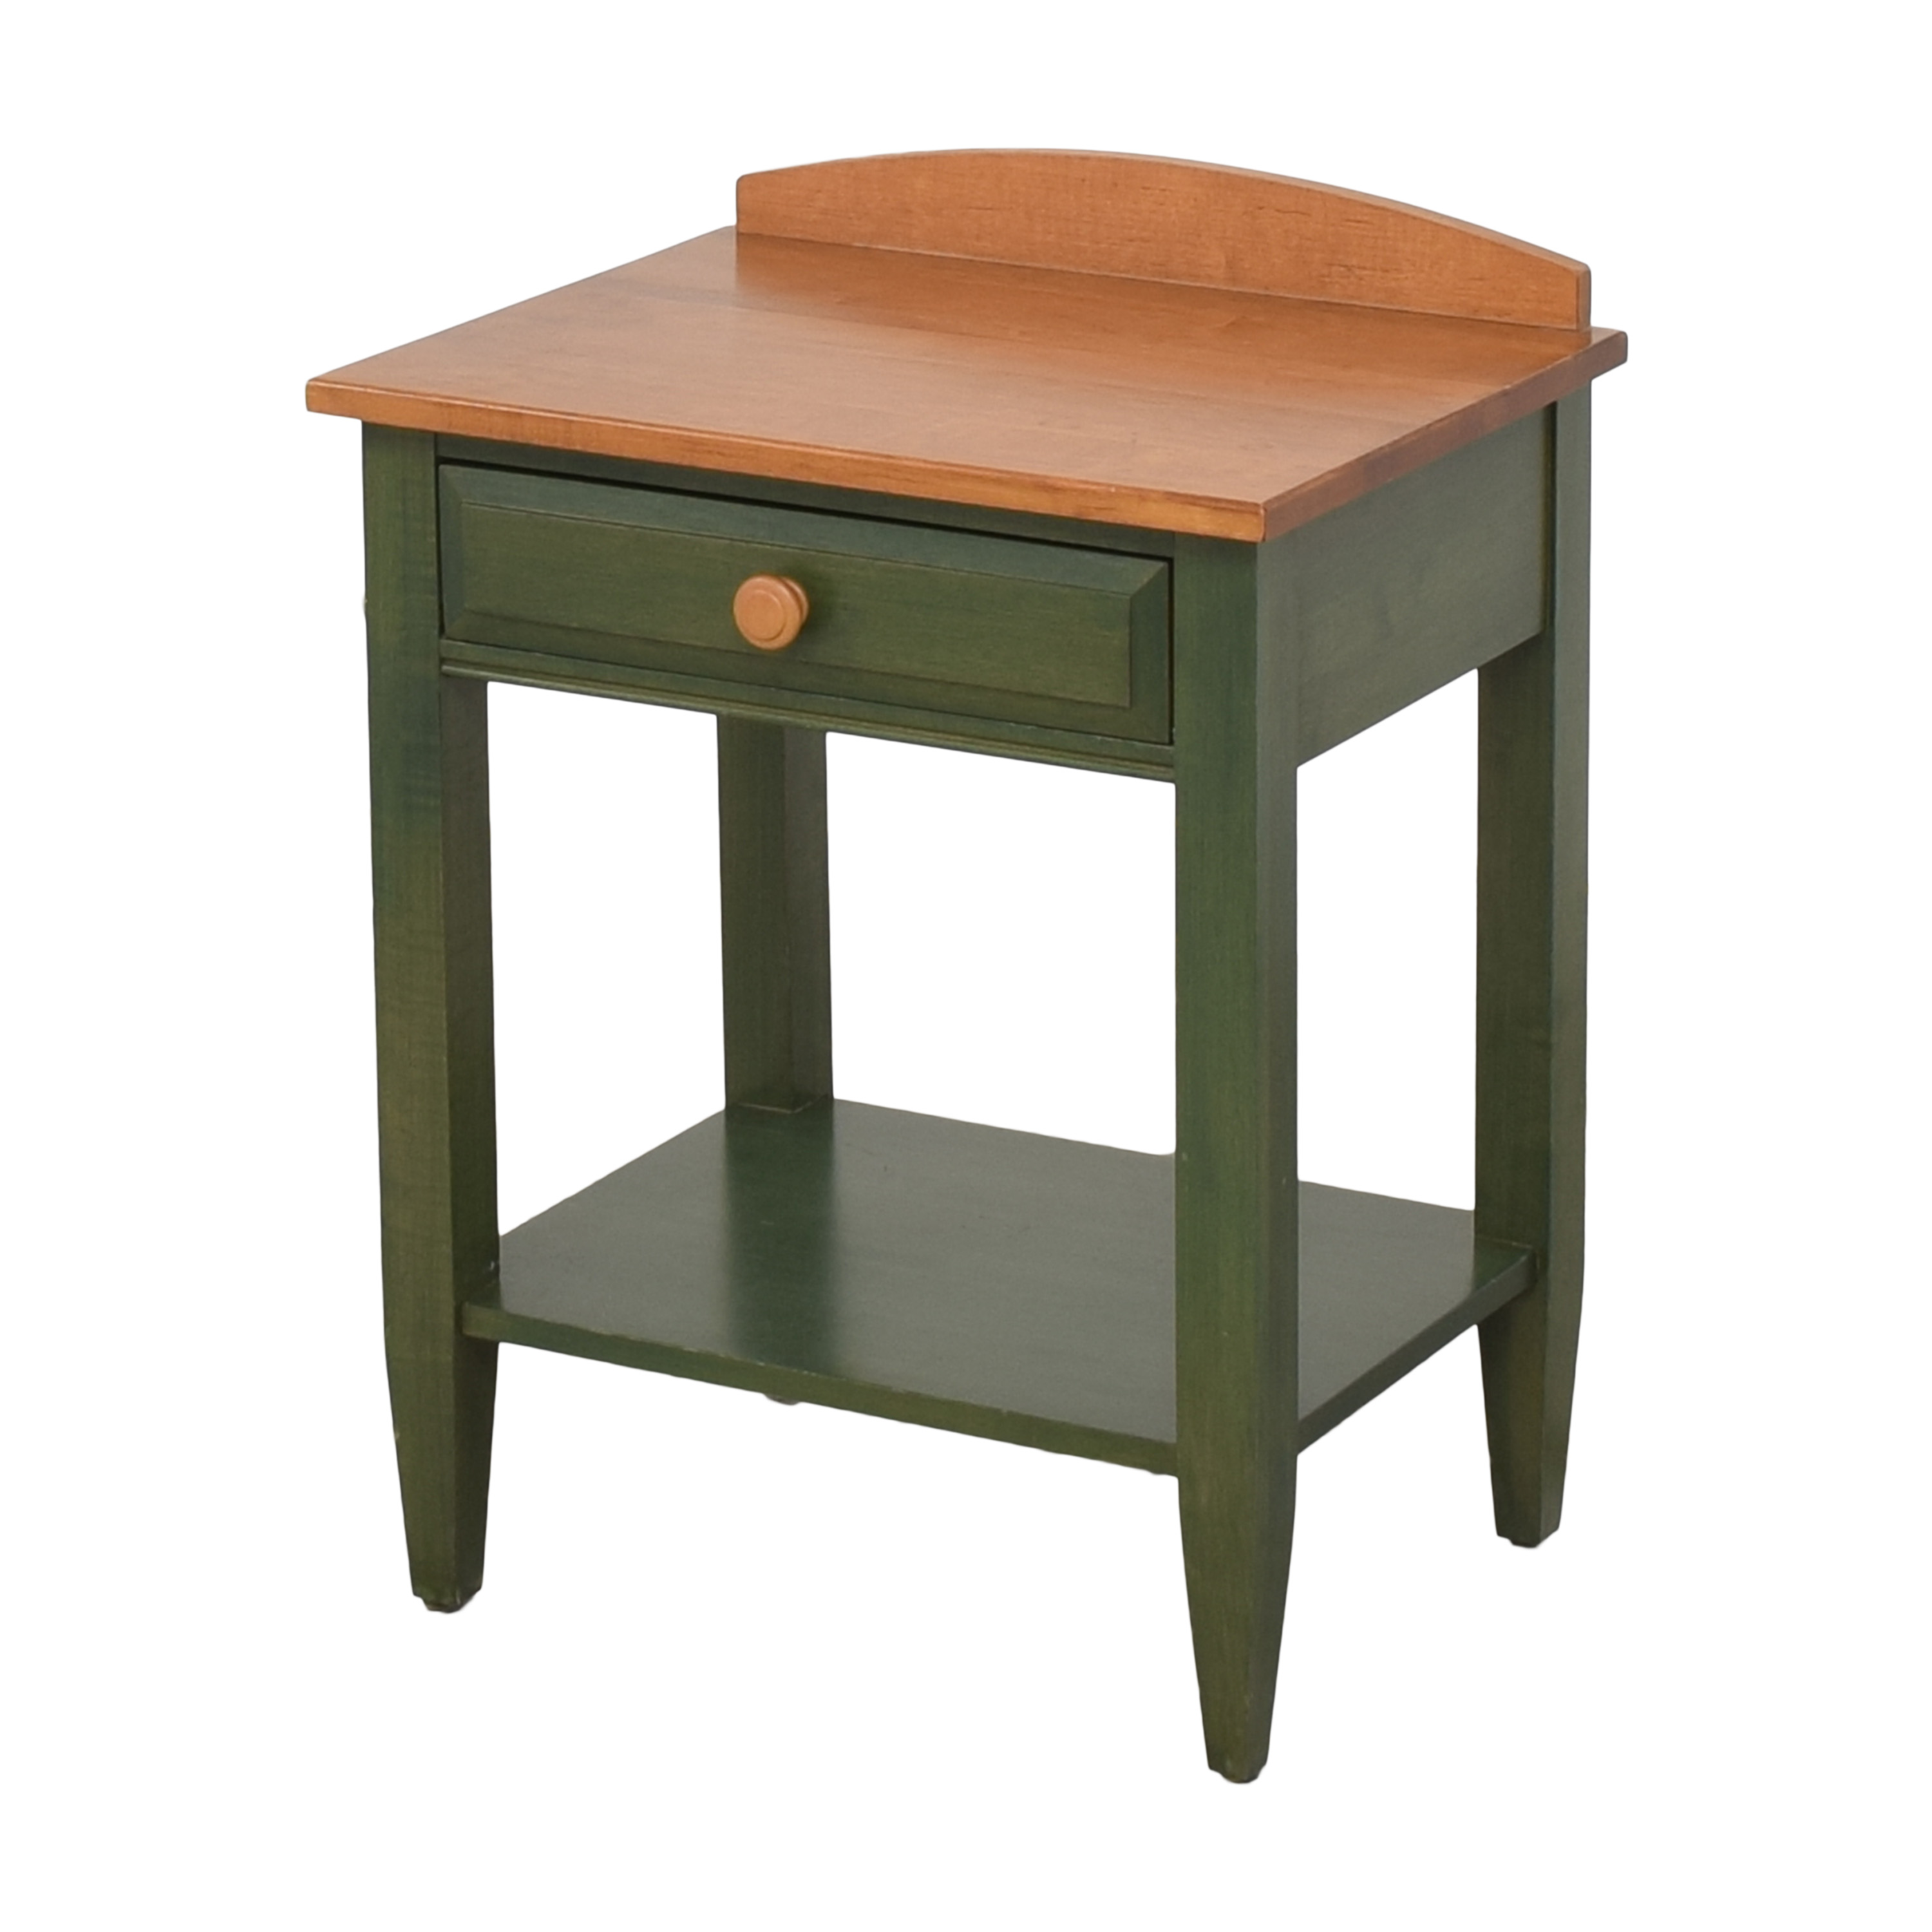 Ethan Allen Ethan Allen Country Colors Nightstand for sale